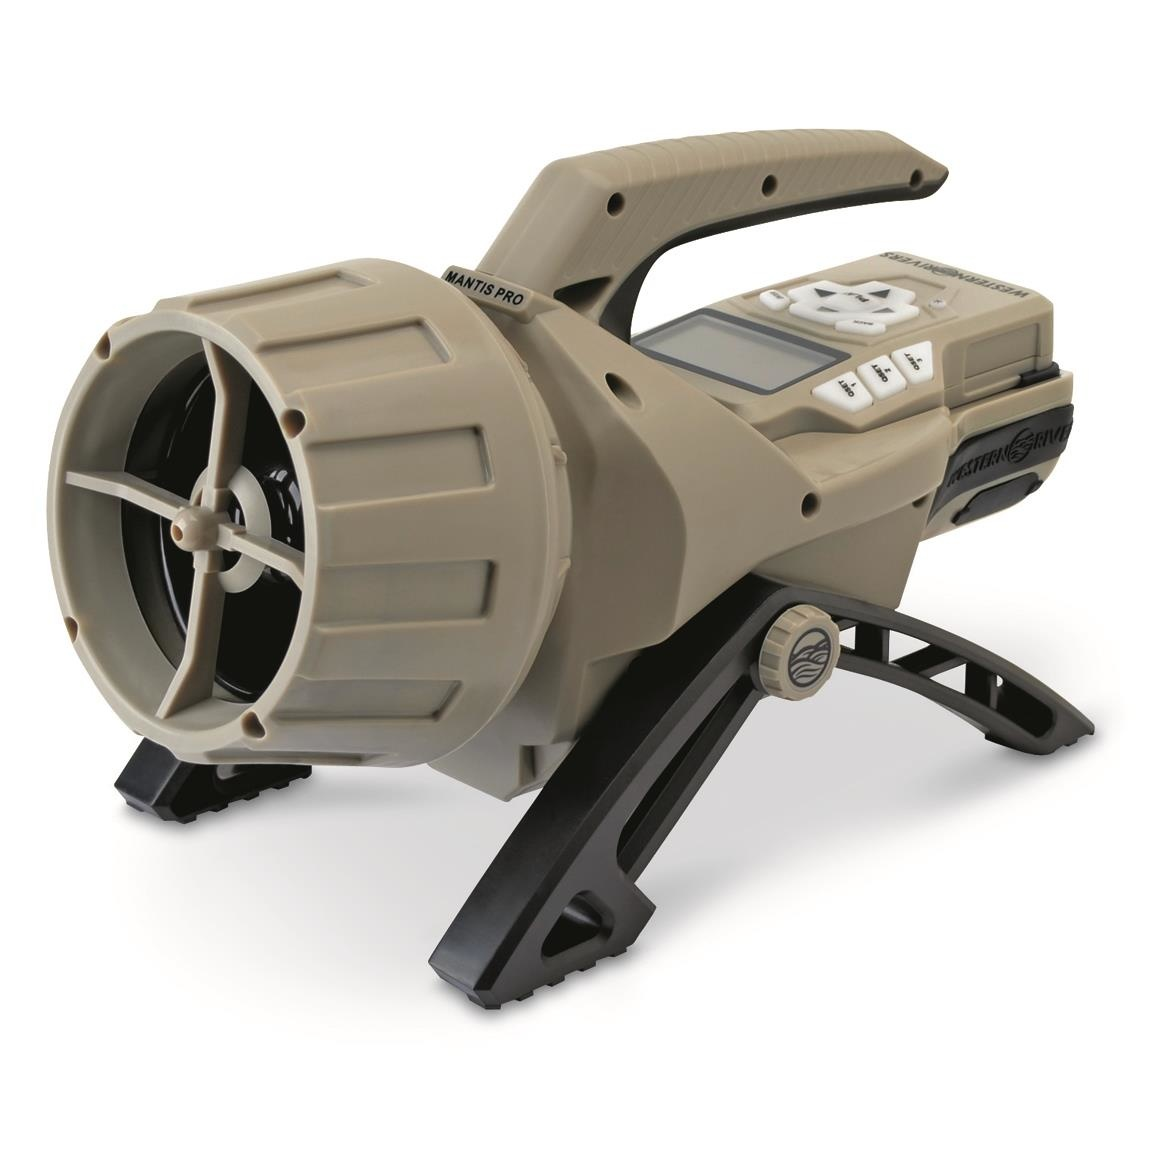 Western Rivers Western Rivers Mantis Pro 400 Electronic Game Call